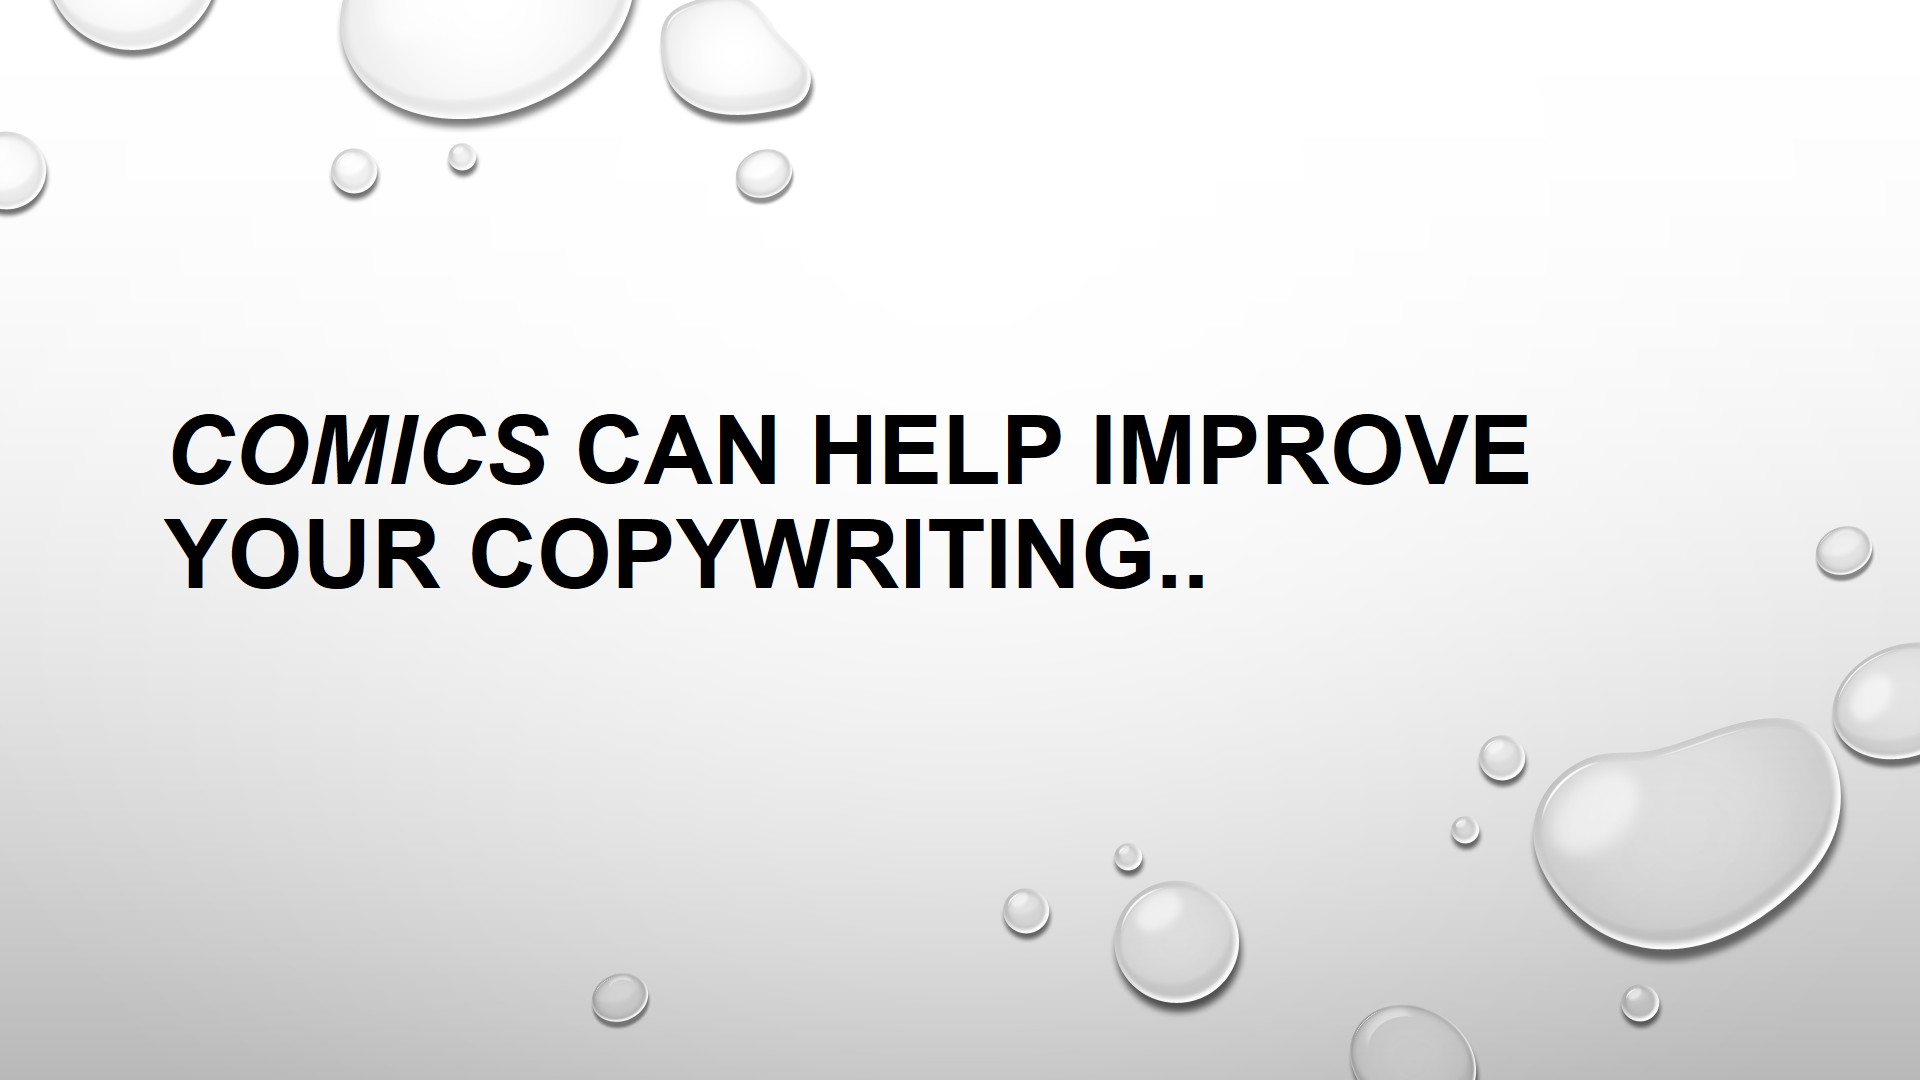 Improve_Copywriting_With_Comics